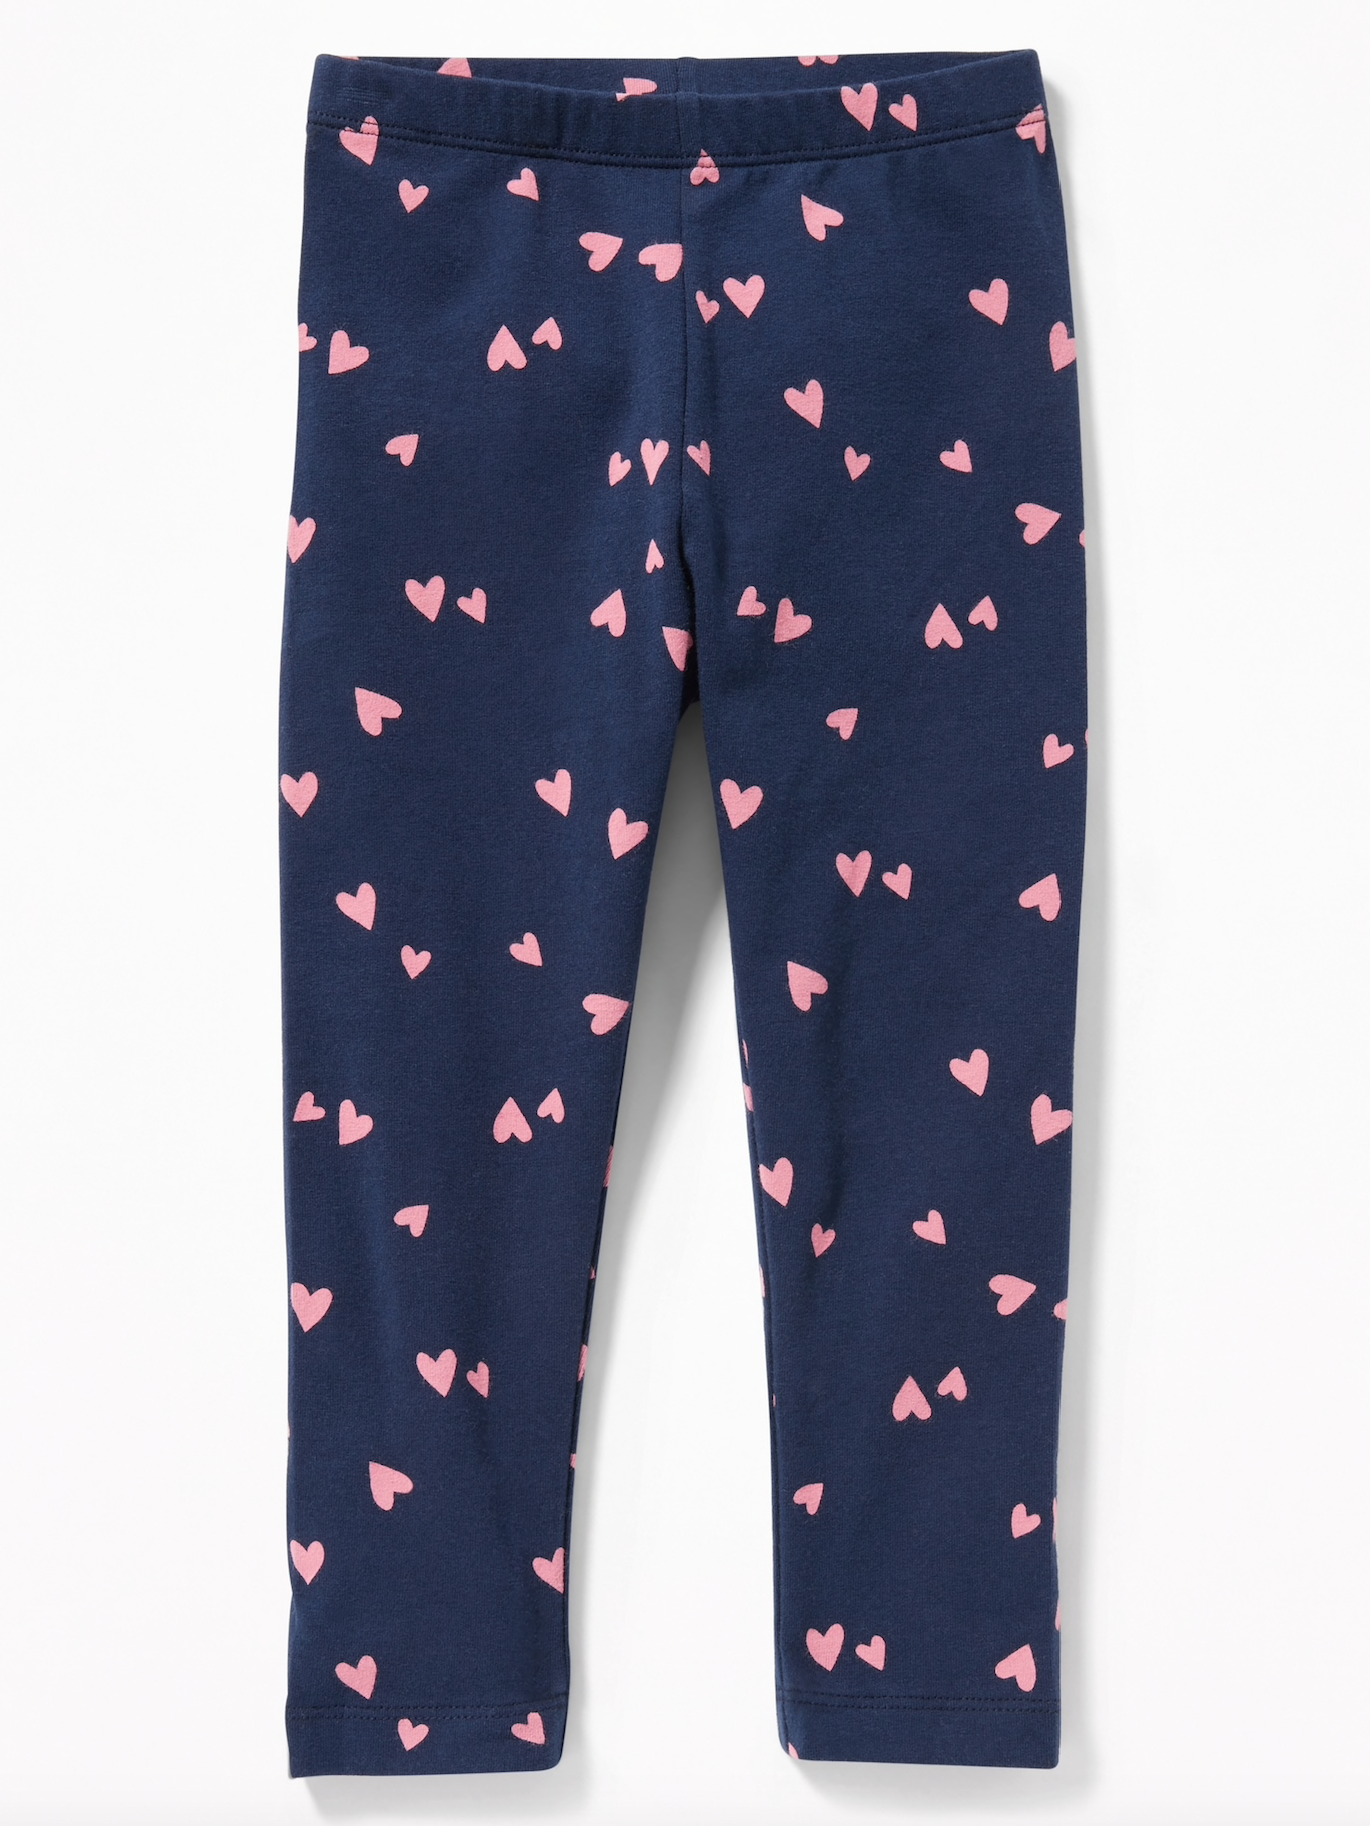 Heart Printed Leggings